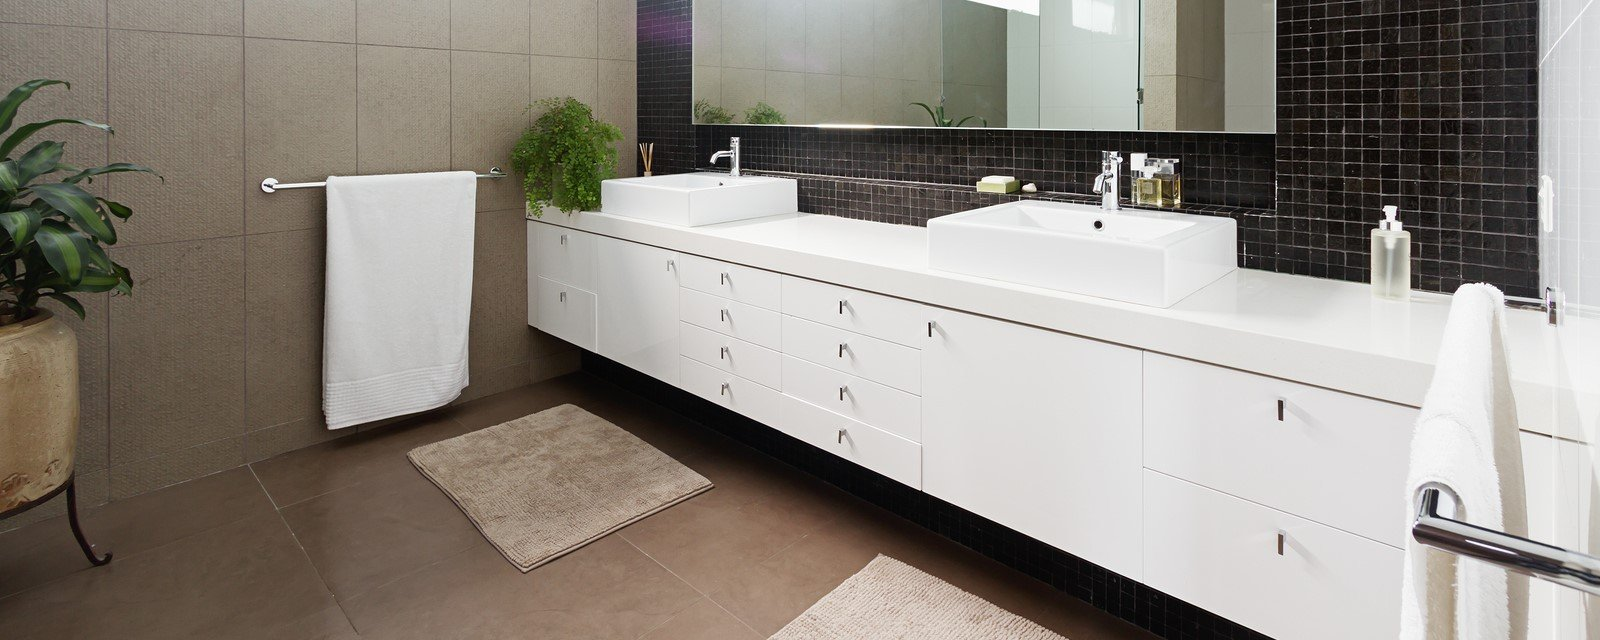 Pure white vanity on a black tile background.